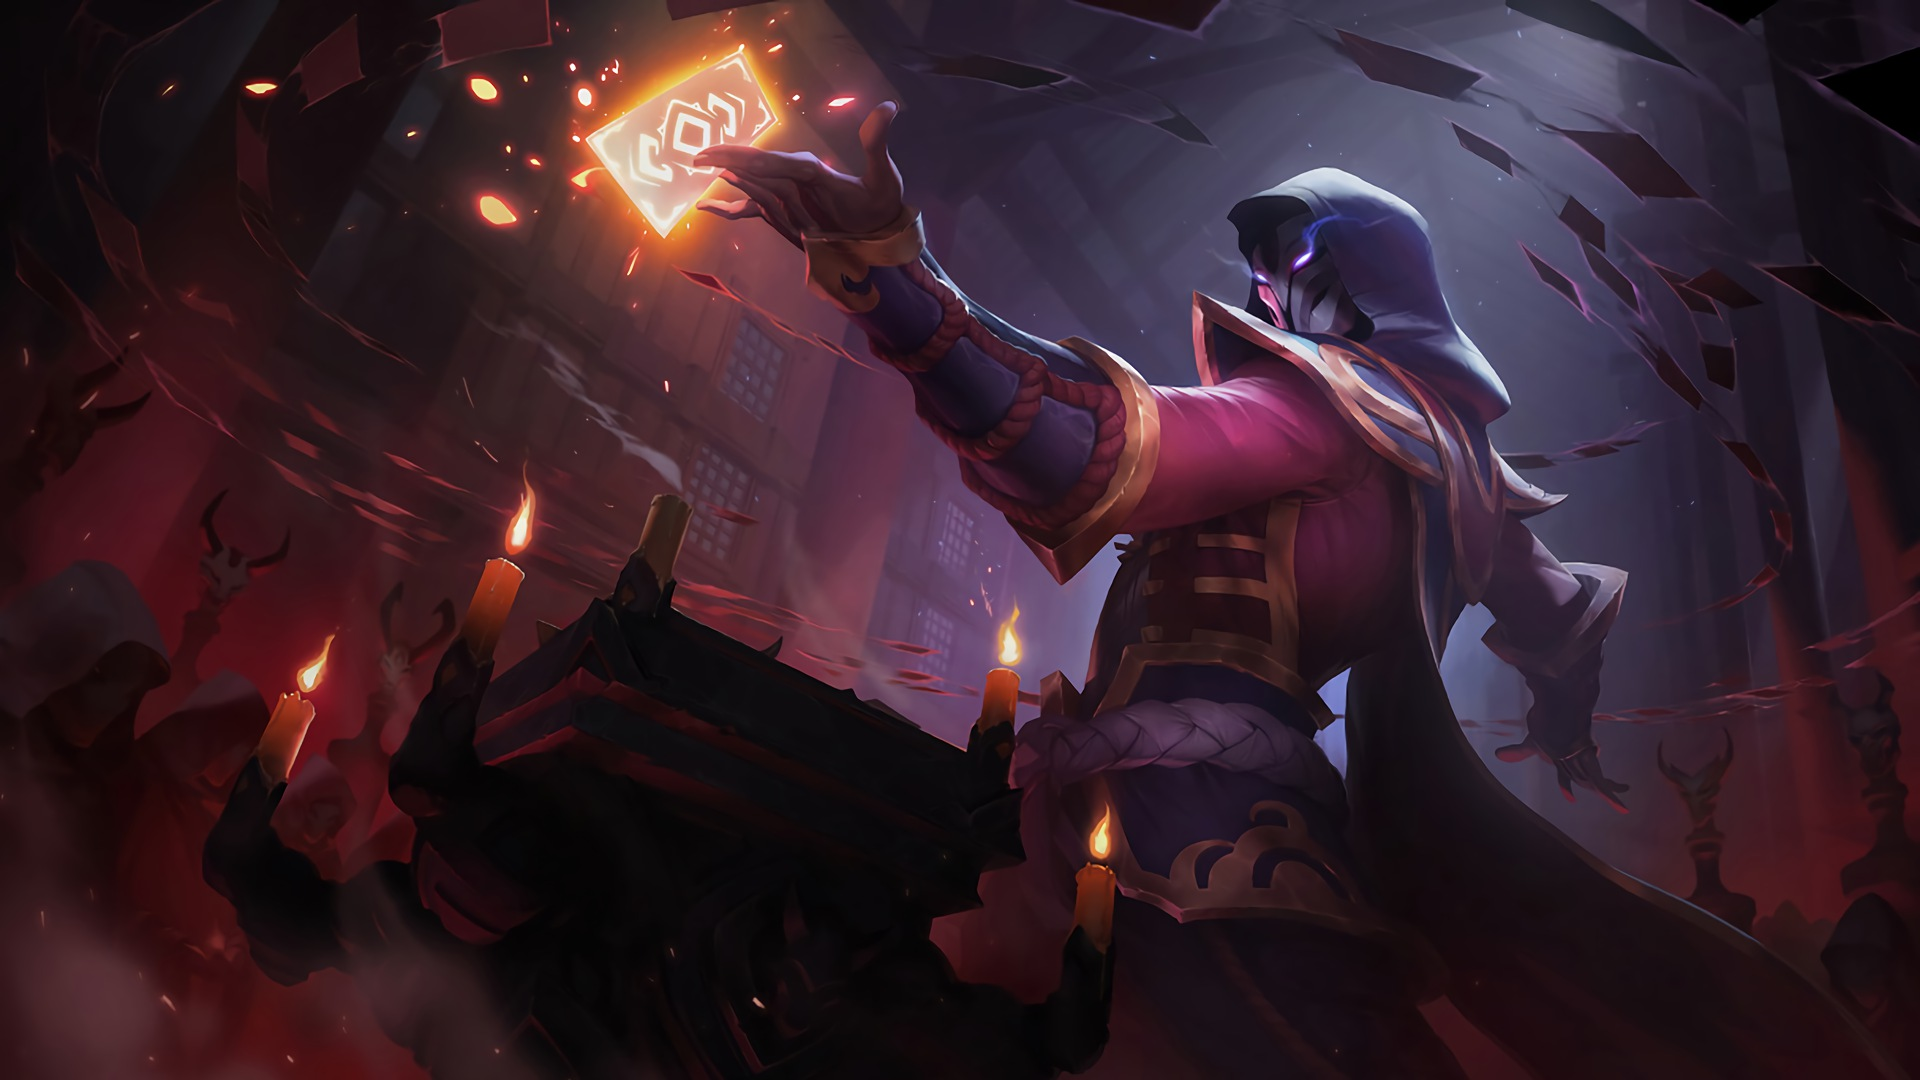 Blood moon twisted fate lolwallpapers blood moon twisted fate wallpaper voltagebd Gallery